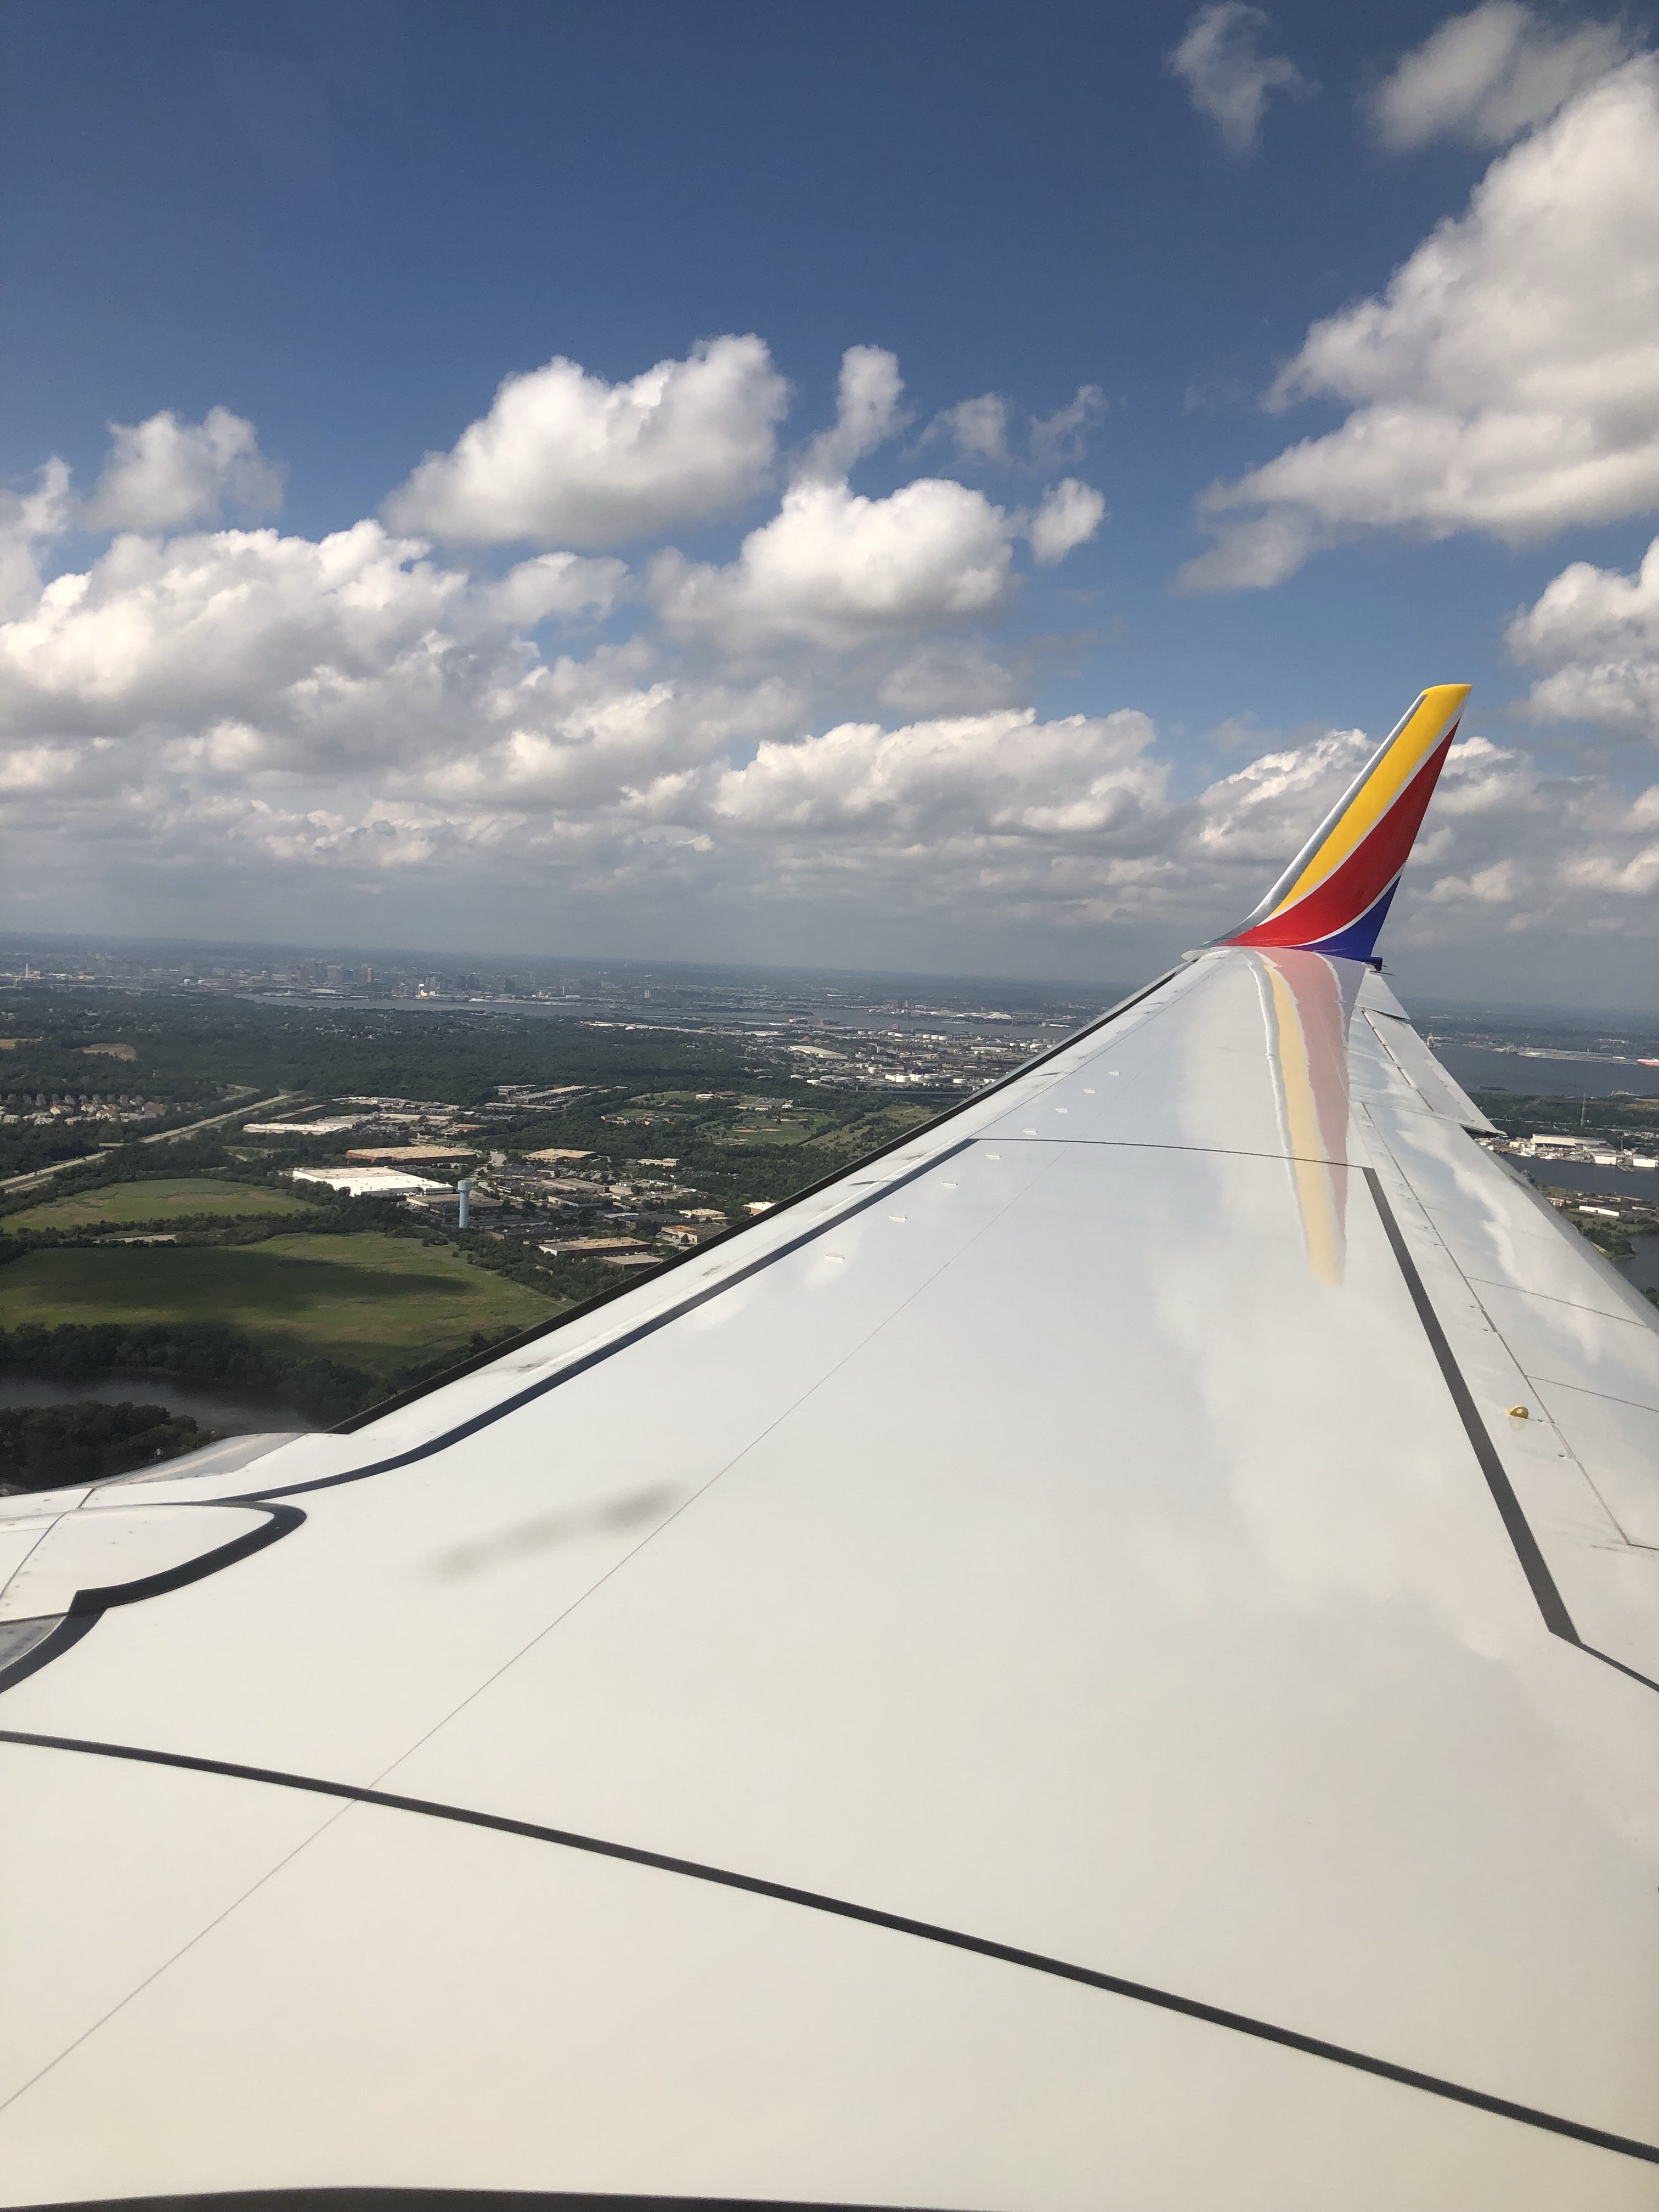 View from Southwest flight